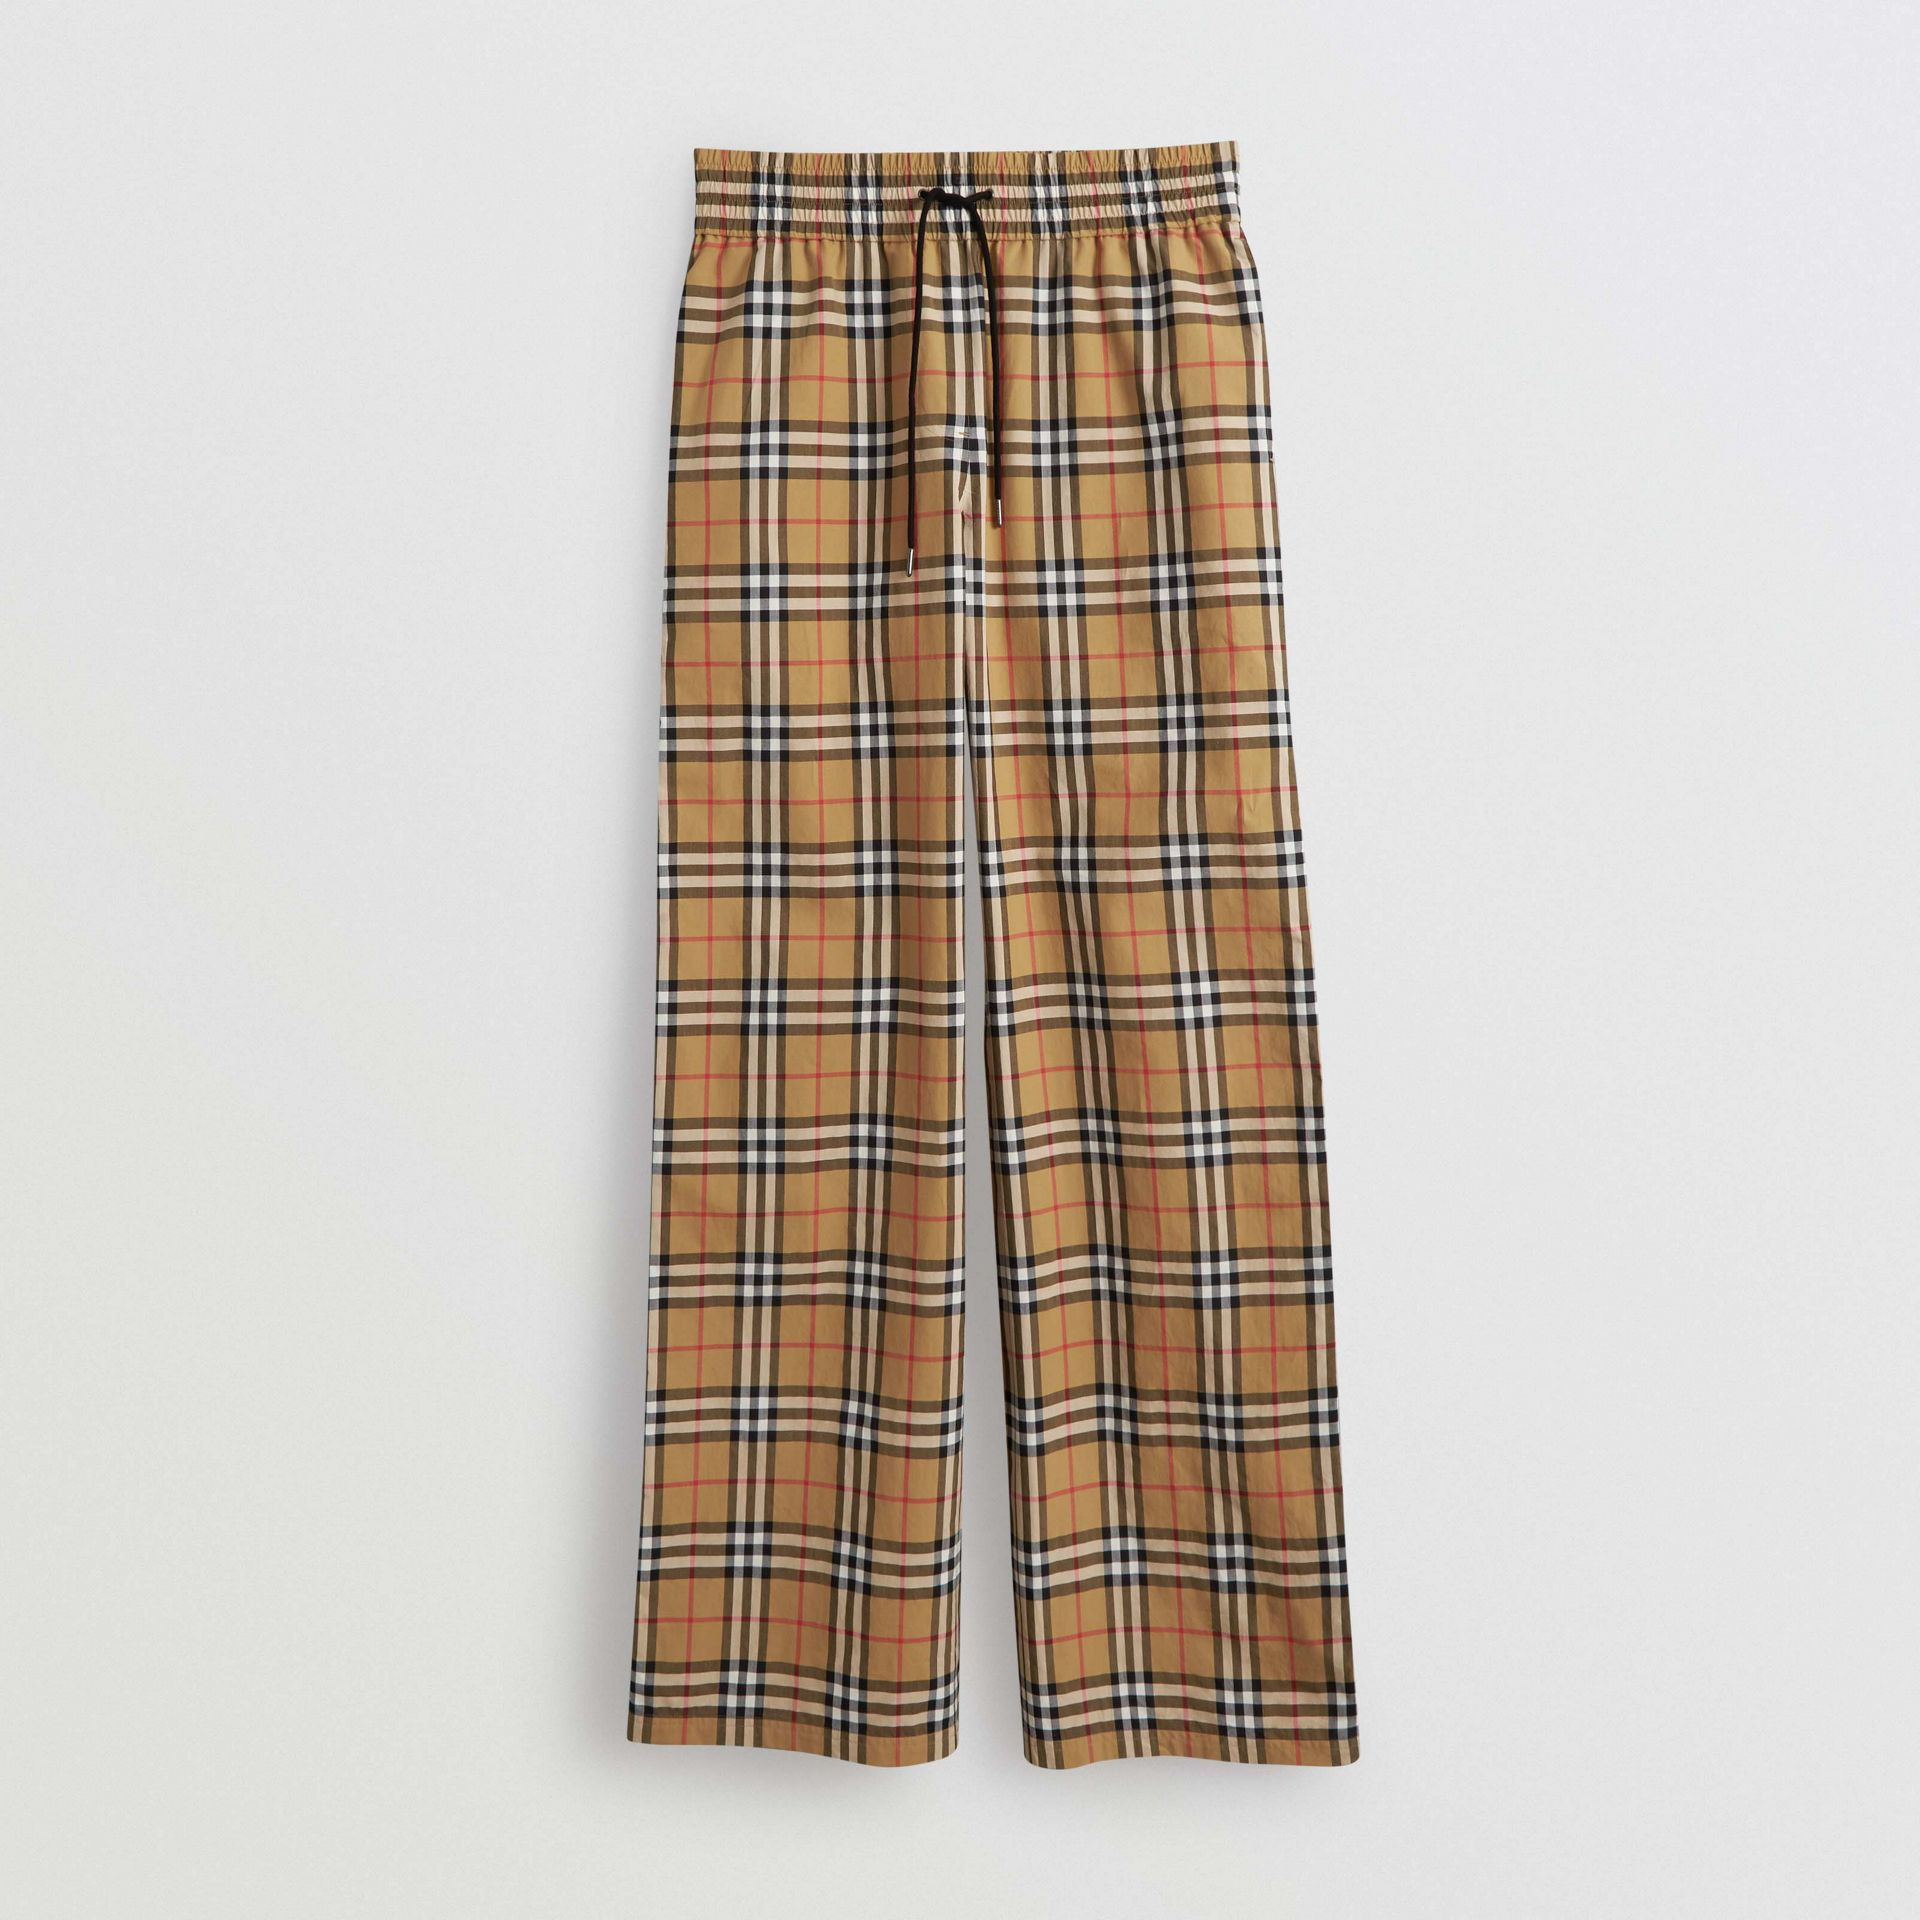 Satin Trim Vintage Check Cotton Trousers in Antique Yellow - Women | Burberry Hong Kong S.A.R - gallery image 3